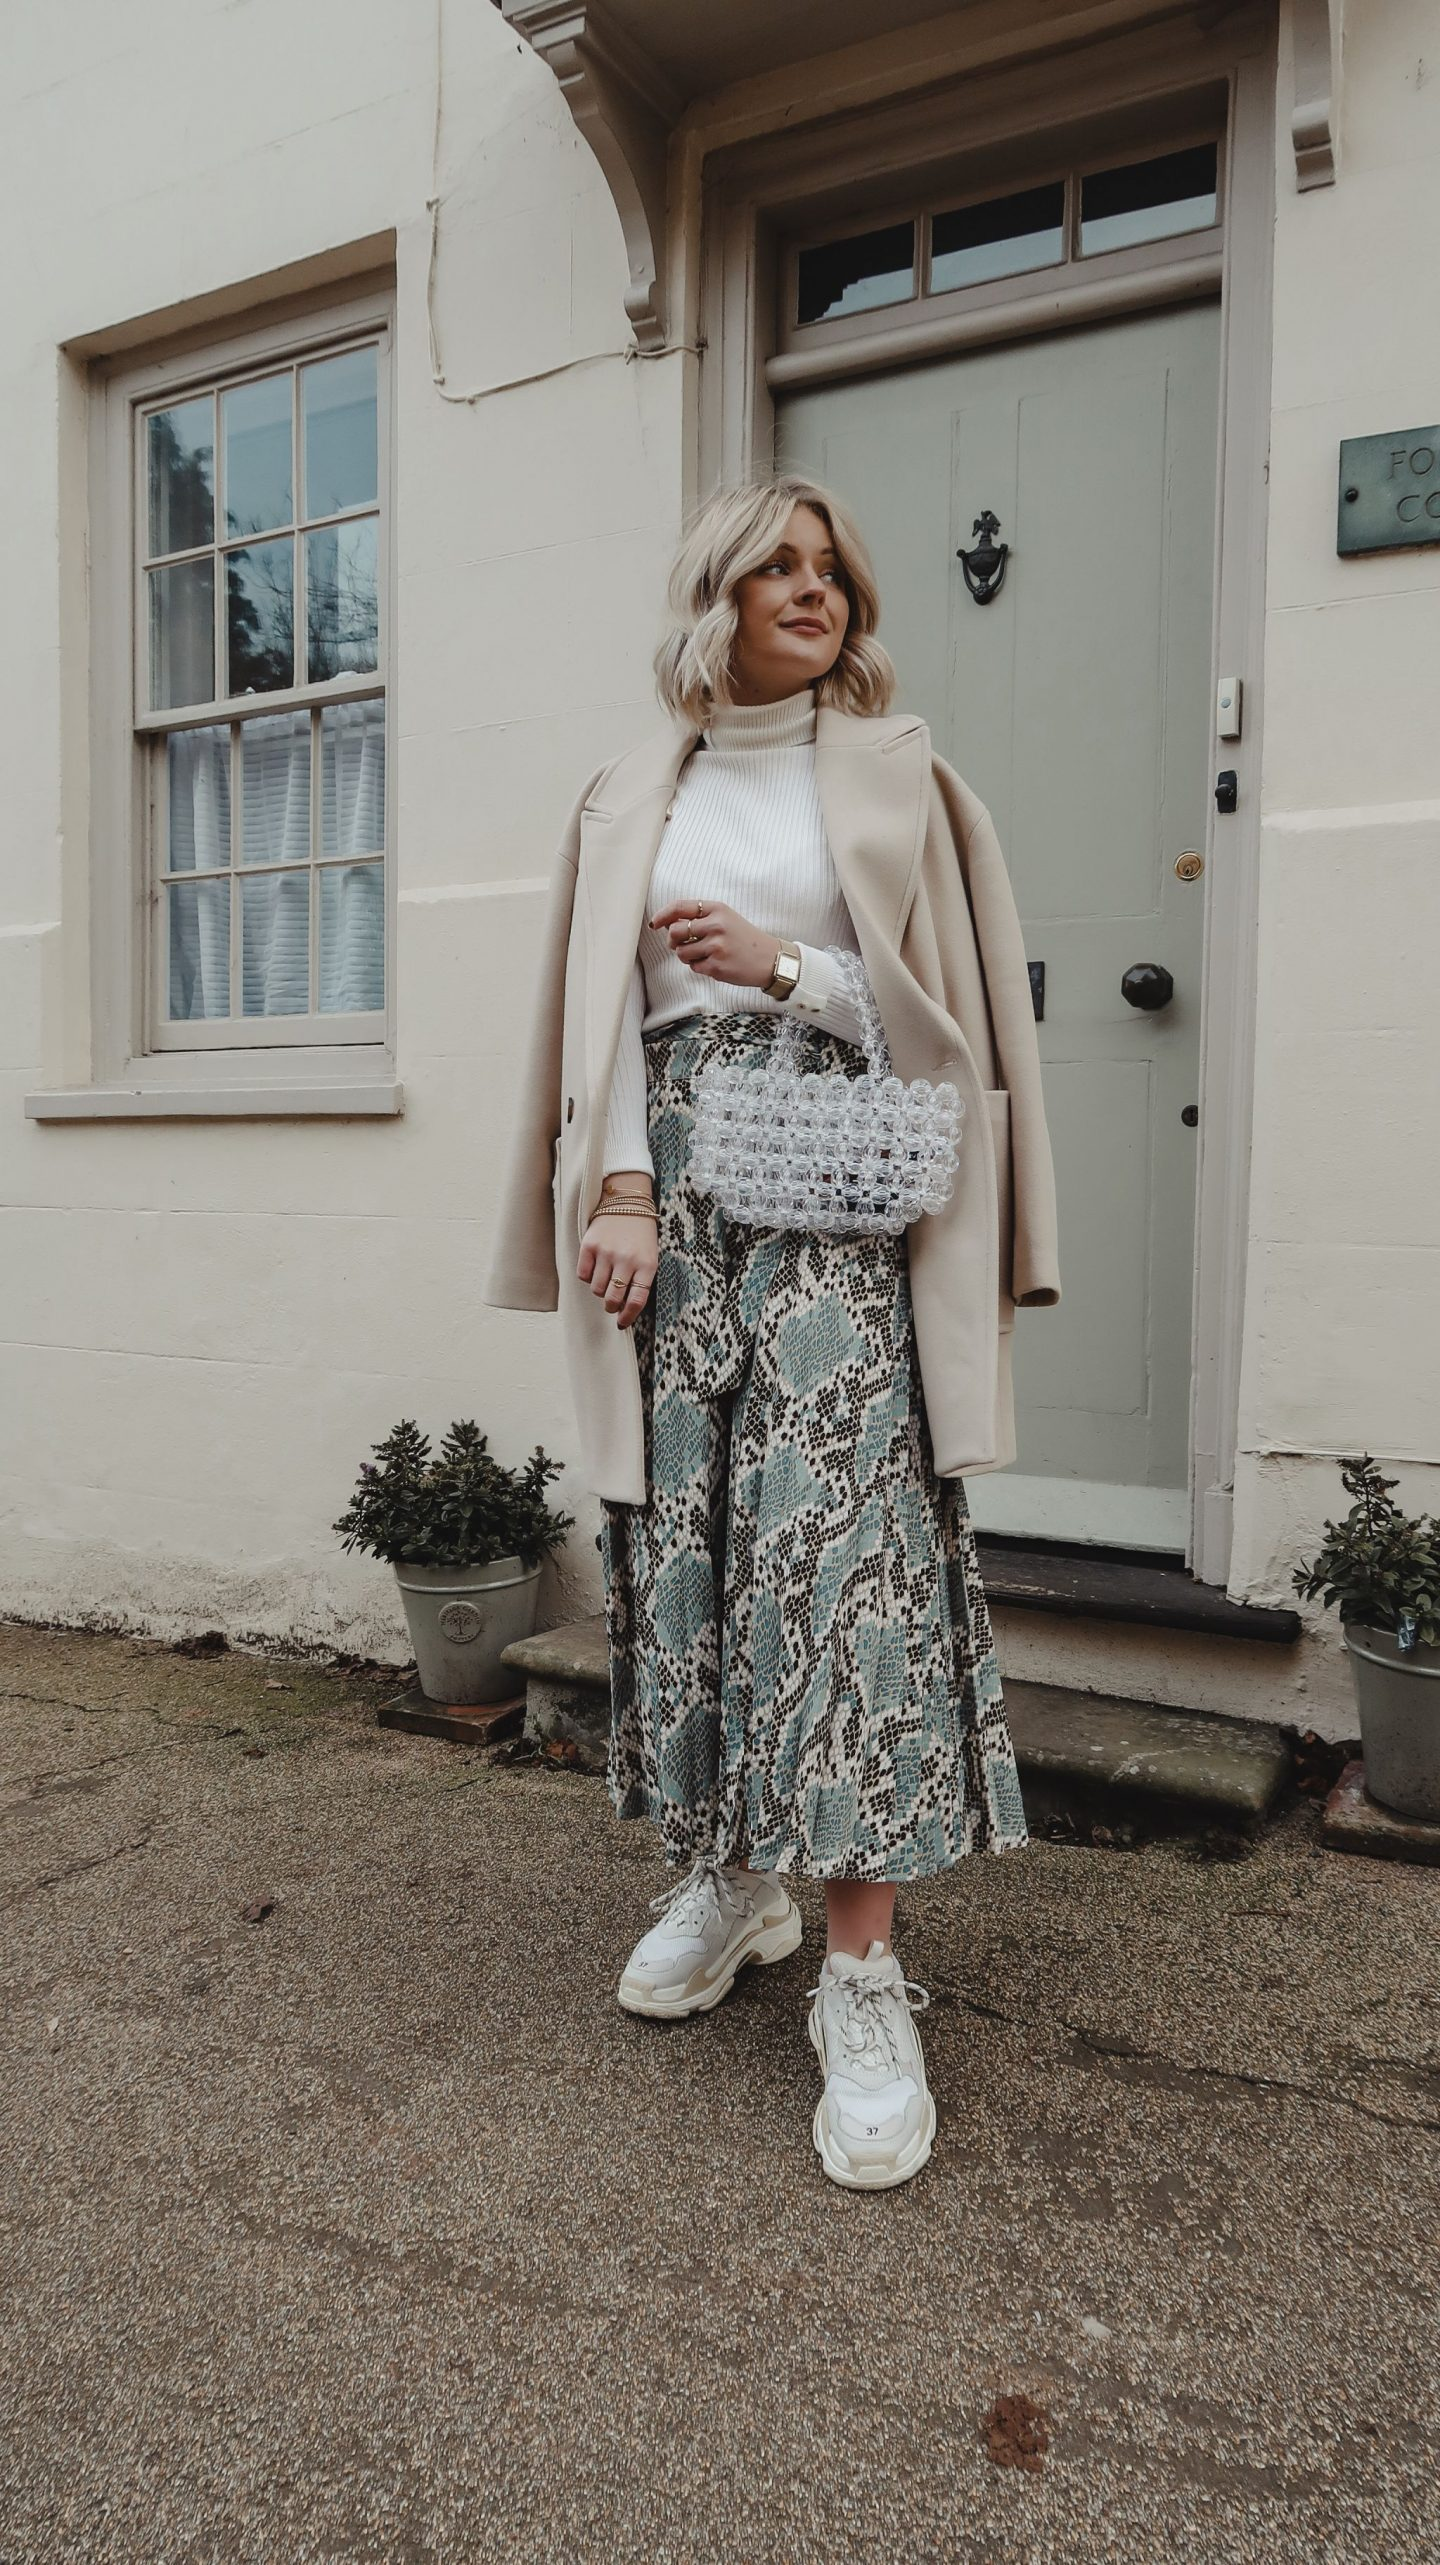 5 FASHION TRENDS FOR 2019 EVERYONE CAN WEAR